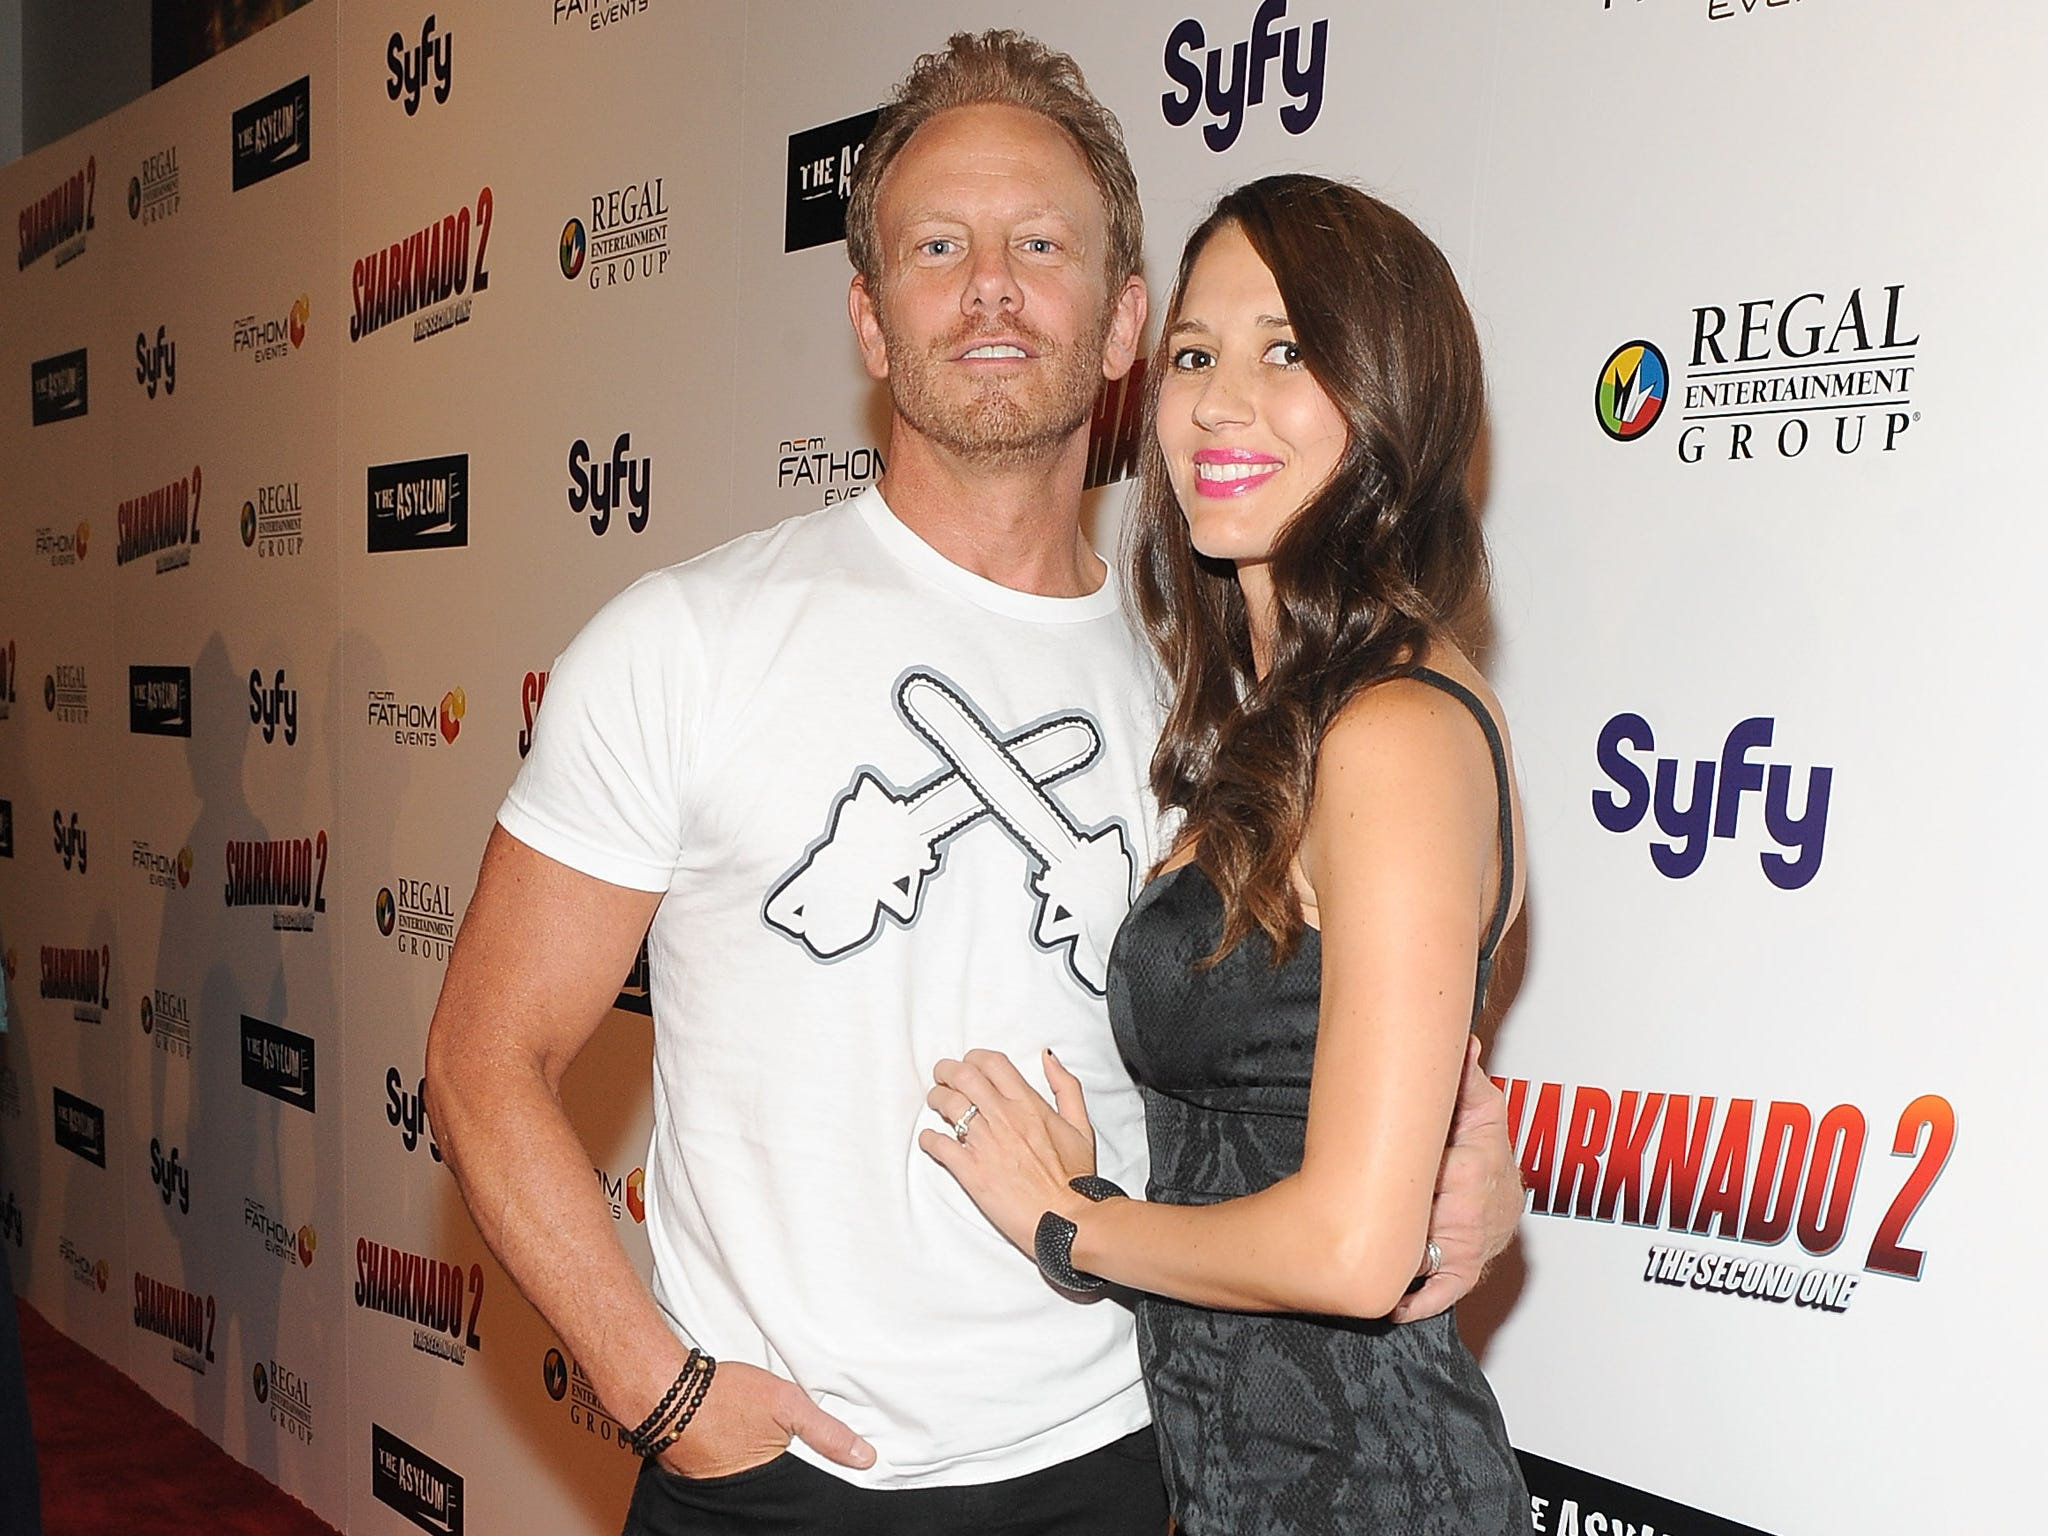 Ziering has been married twice: first to Nikki Schieler from 1997 to 2002 and then to Erin Kristine Ludwig (seen here) since 2010.